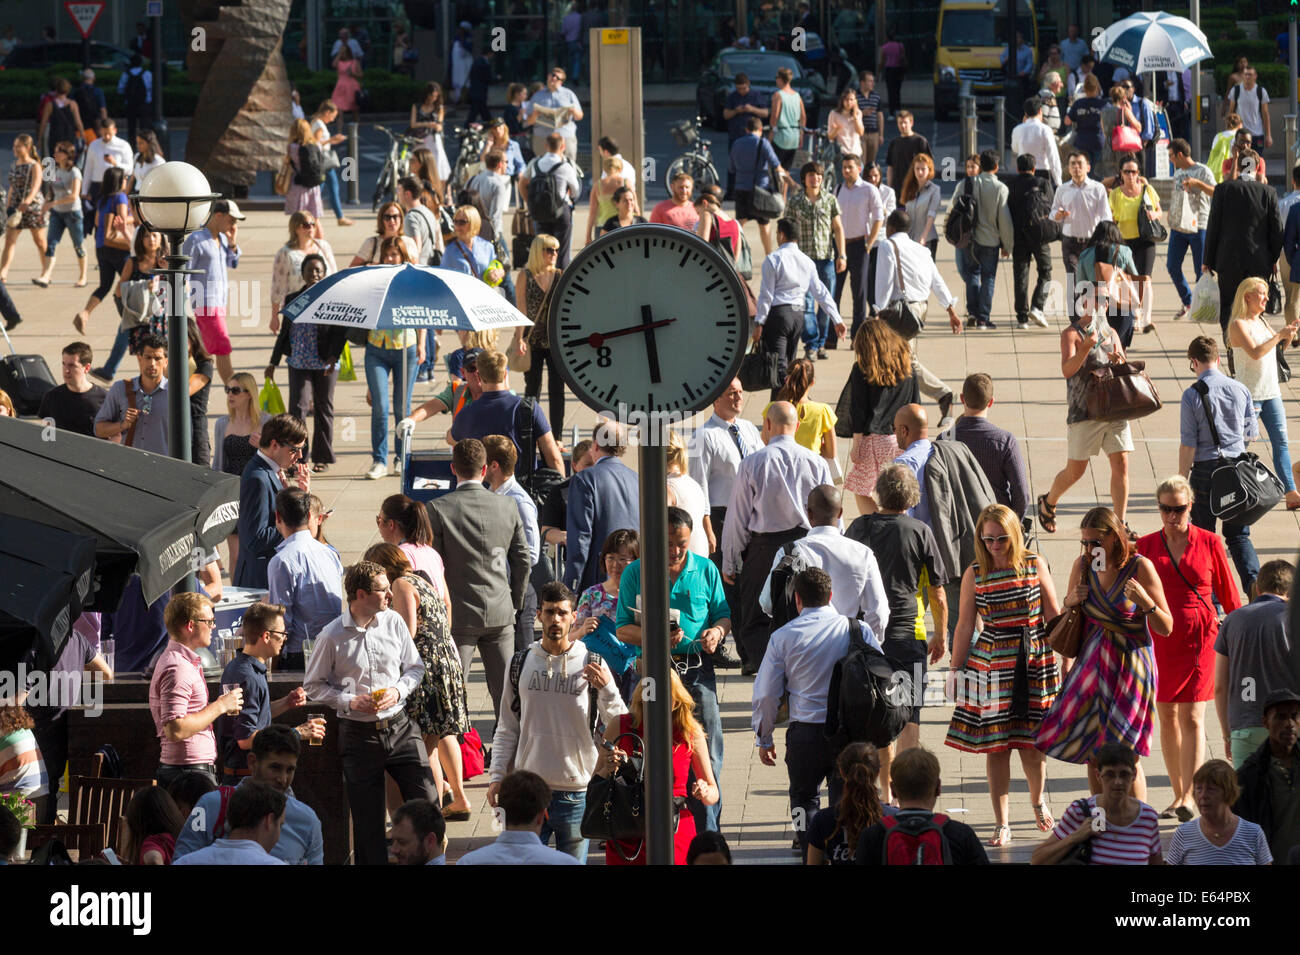 Evening Rush Hour - Canary Wharf - London - Stock Image